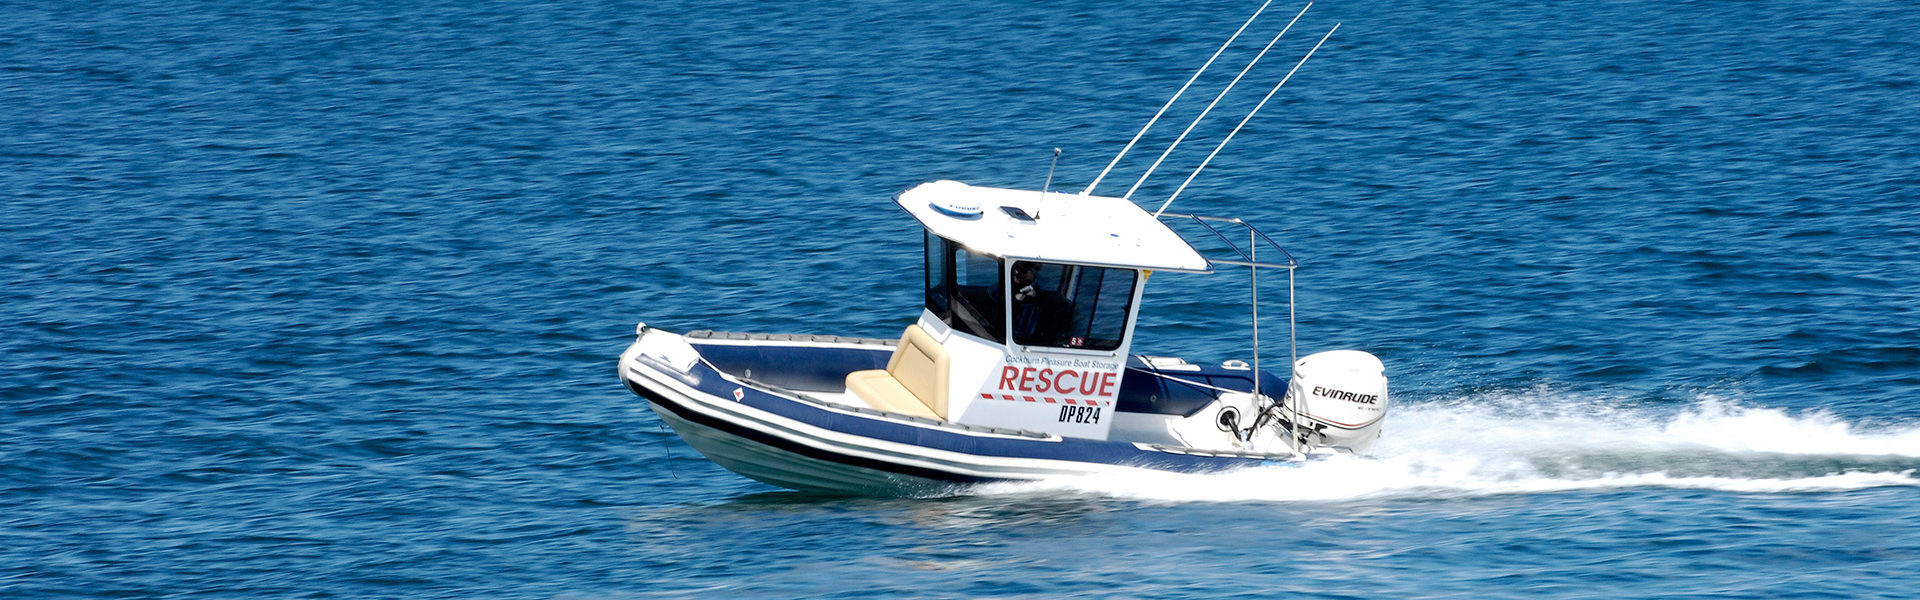 header-search-rescure-sar-6.5